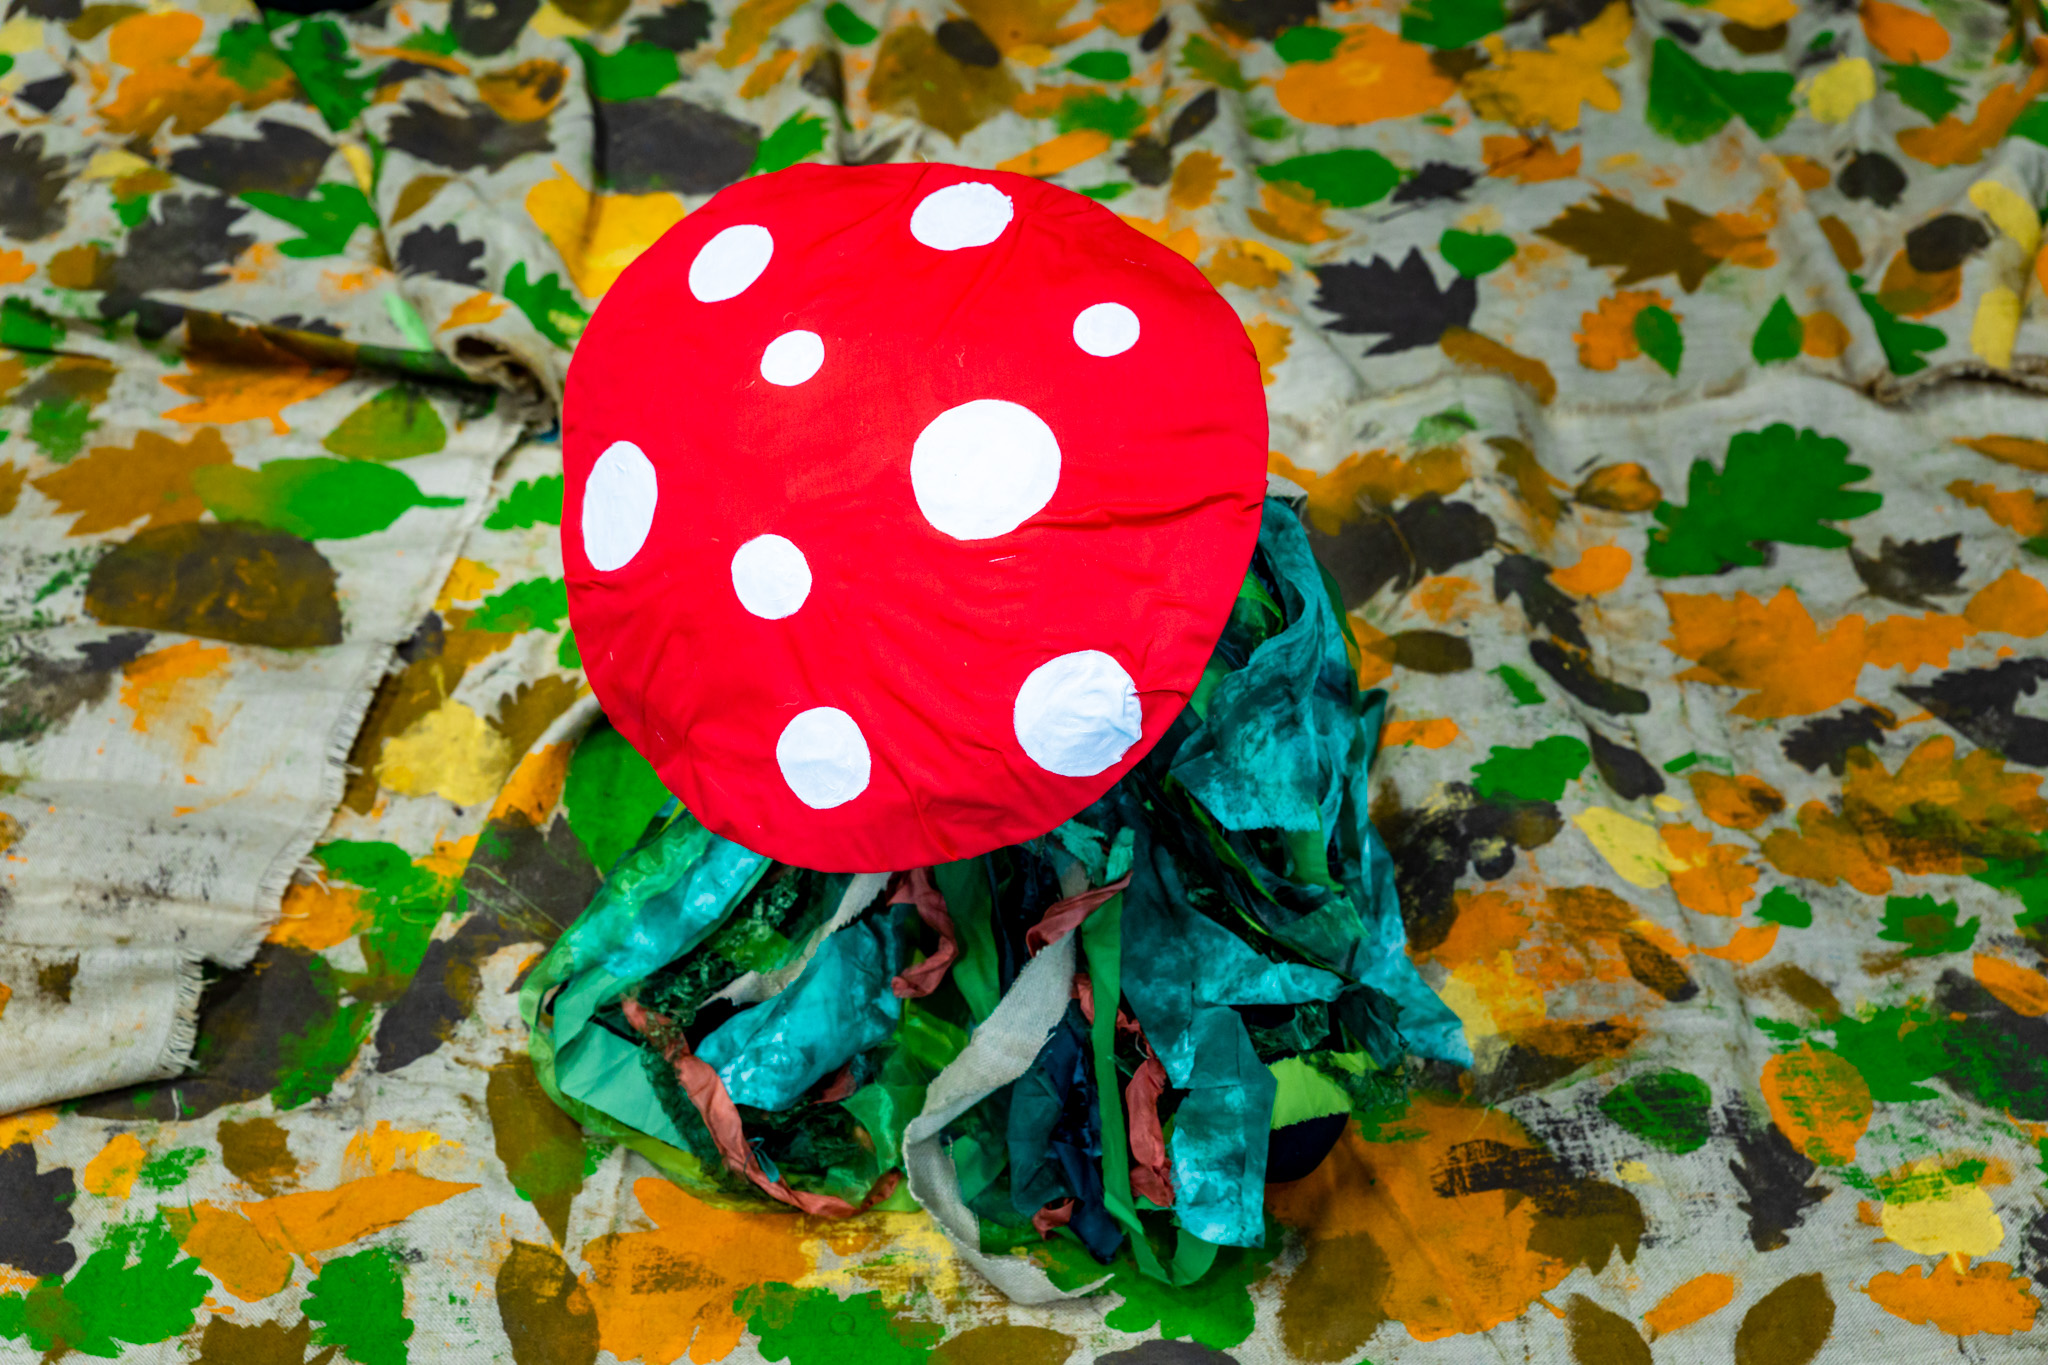 Singer in a toadstool costume